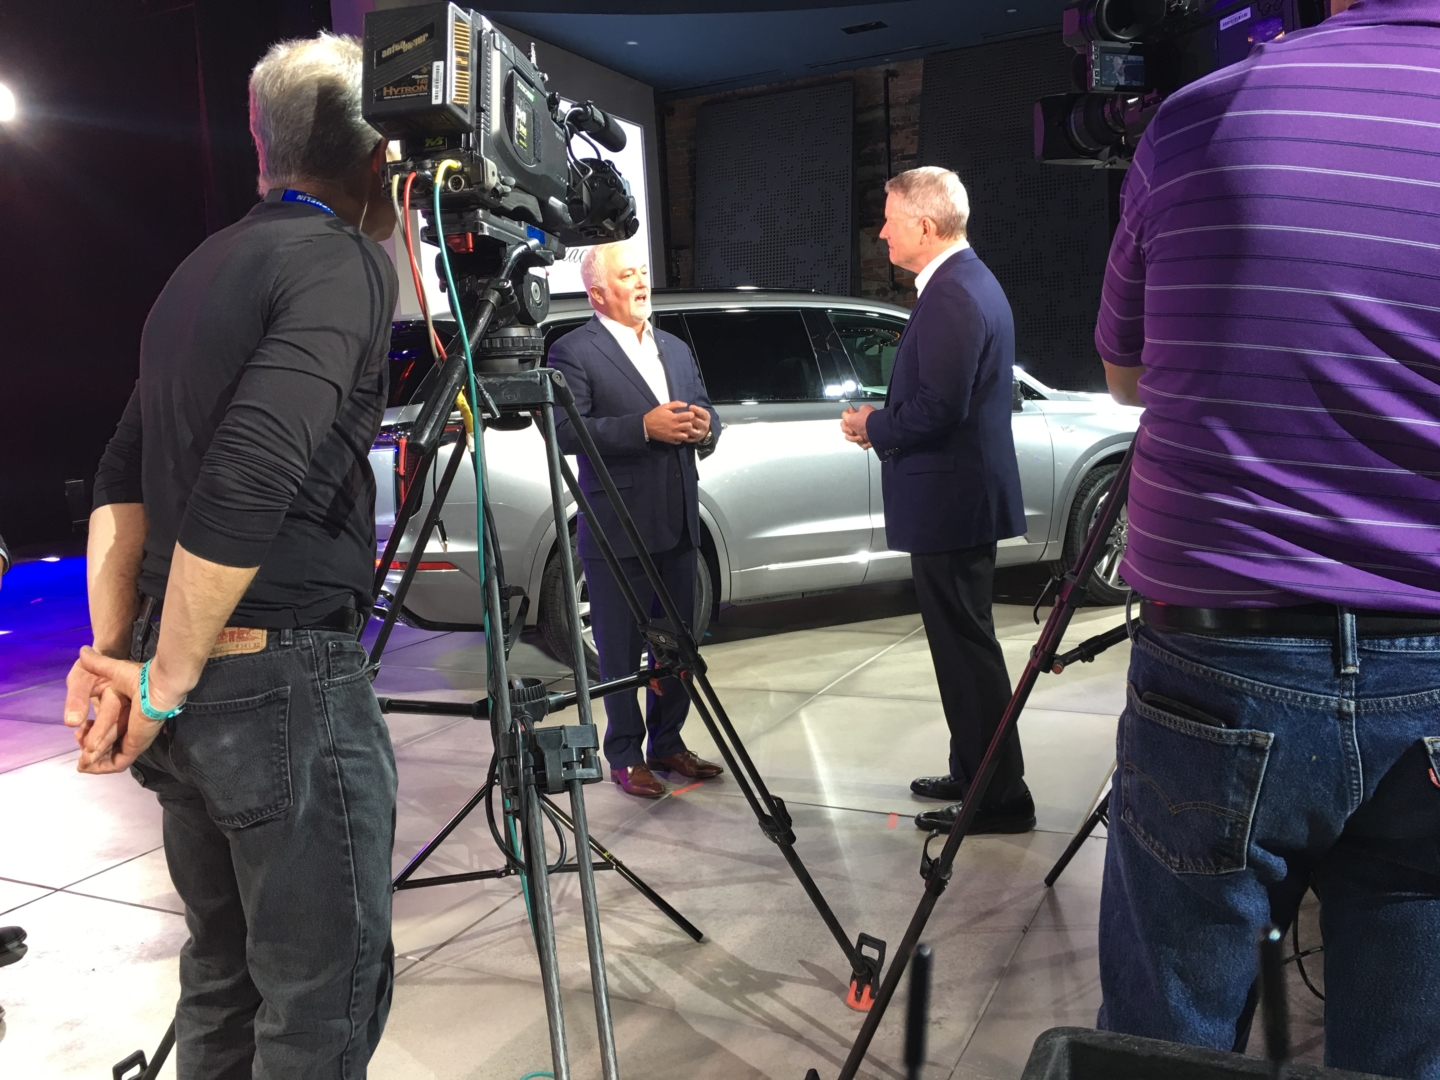 Two men are speaking in front of a camera next to vehicles on display at the 2019 Detroit Auto Show